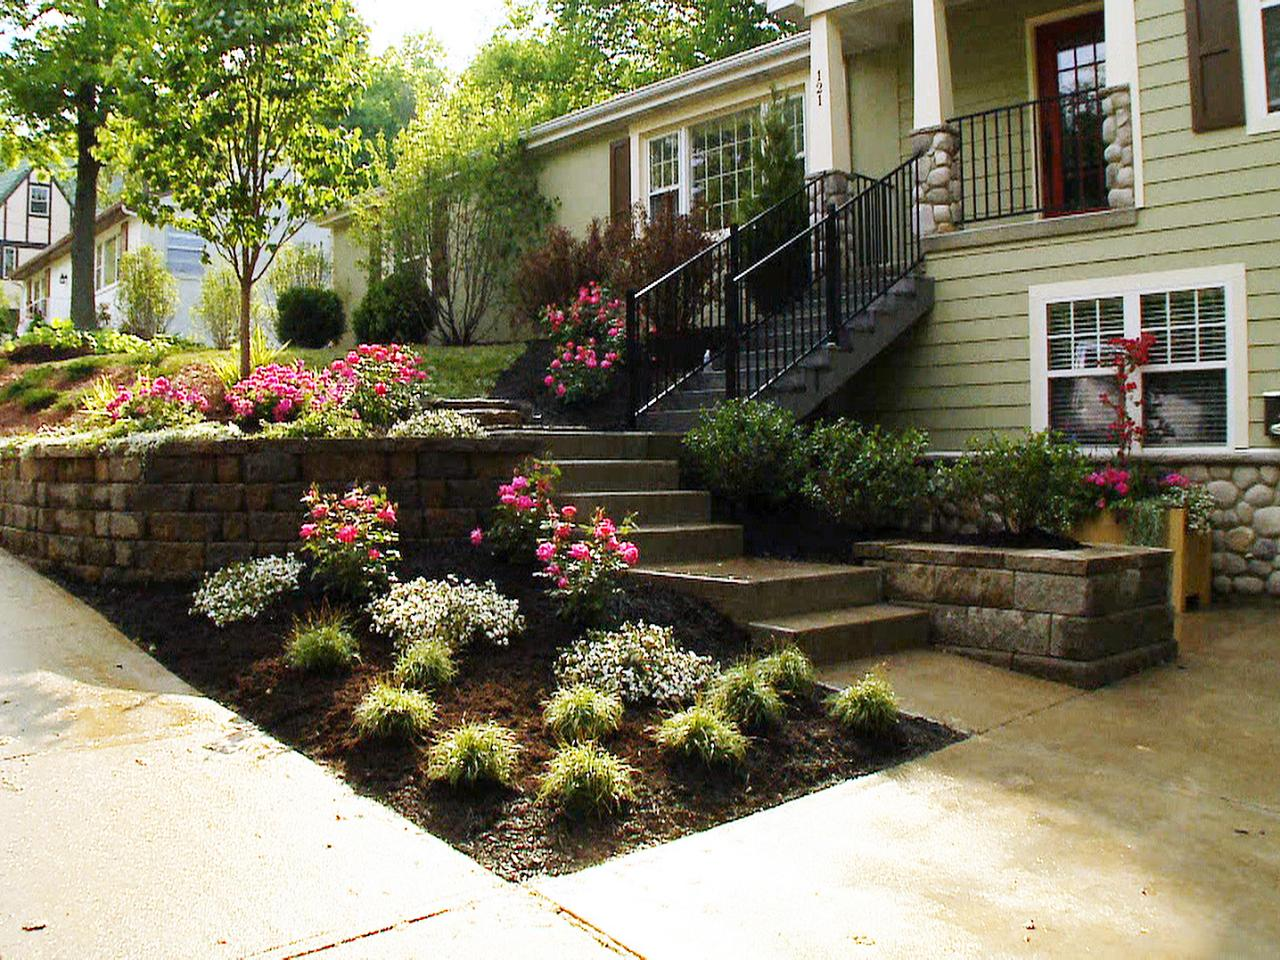 Front yard landscaping ideas diy landscaping landscape Small front lawn garden ideas